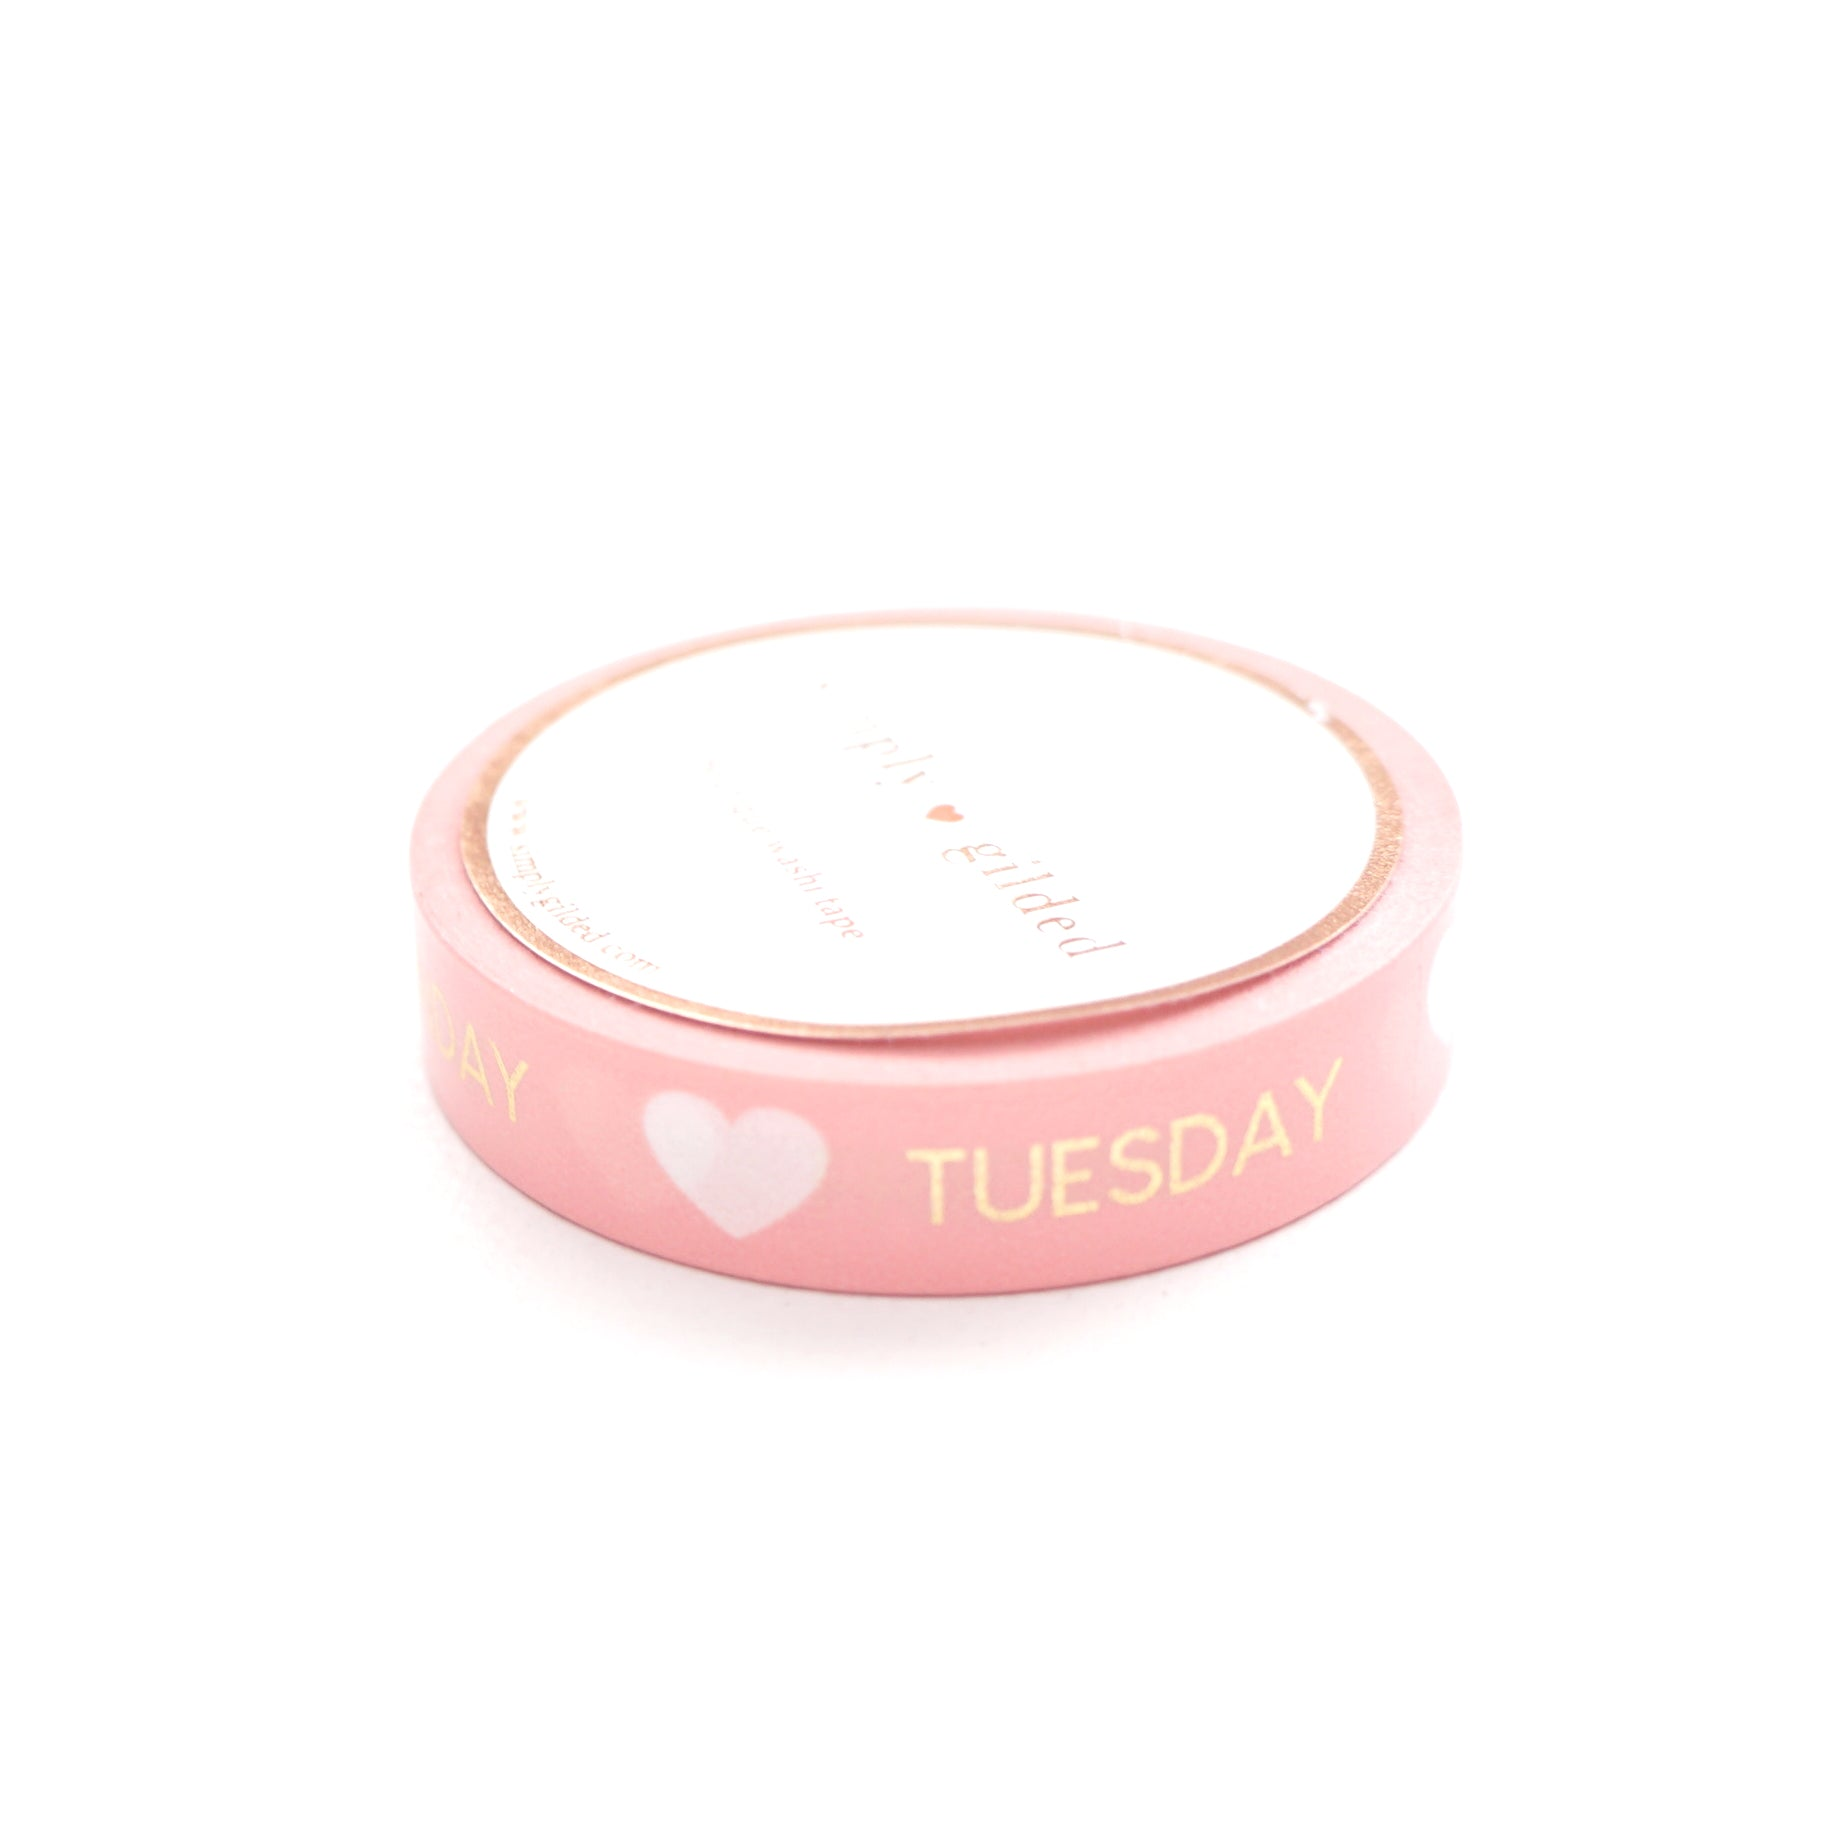 PERFORATED WASHI TAPE 10mm - CORAL Days of the Week - light gold (Mermaid Dreams Release)